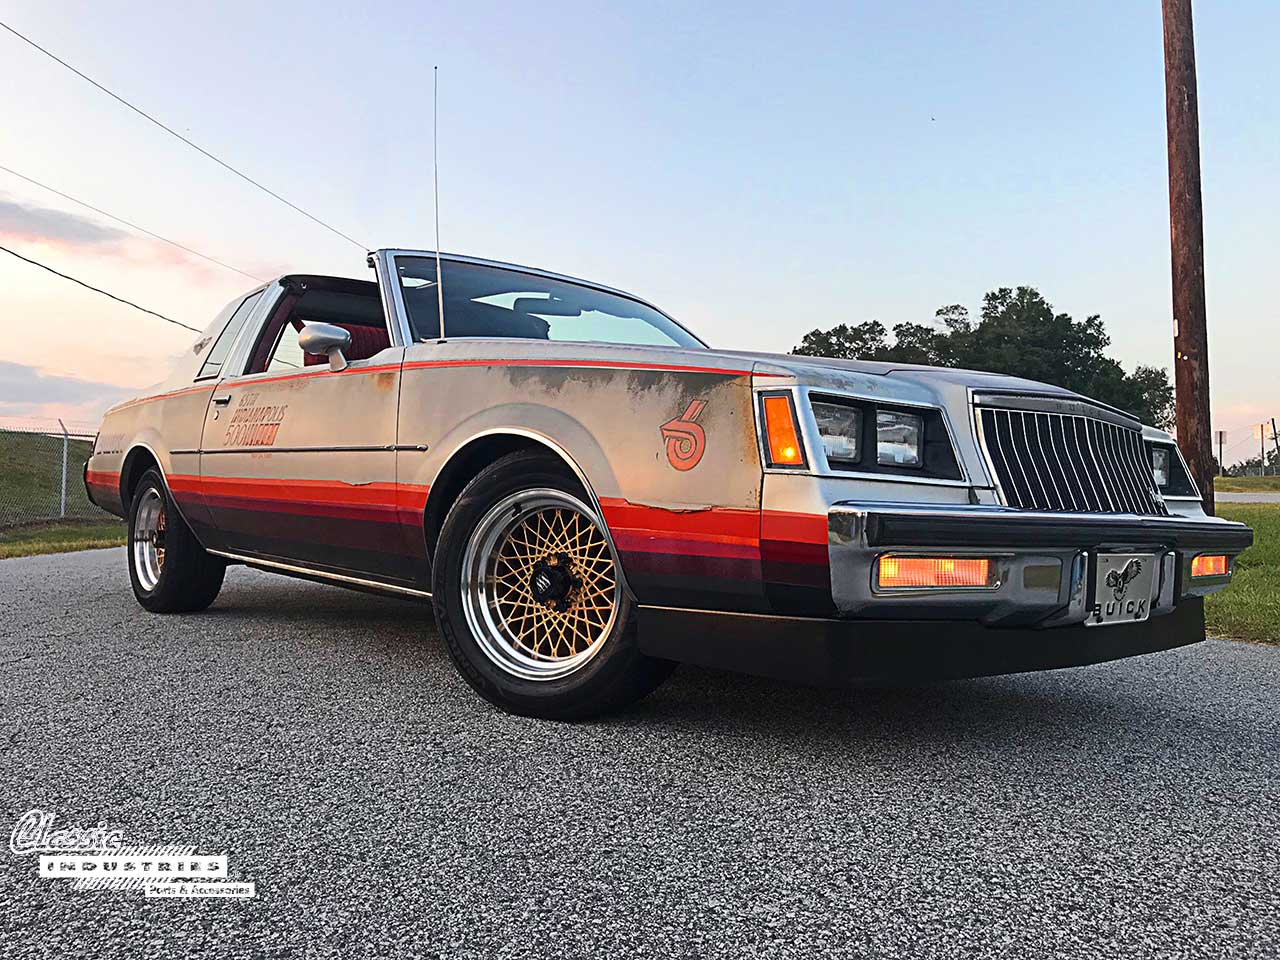 Fully Restored 1987 Buick Regal T-Type New Metal Sign